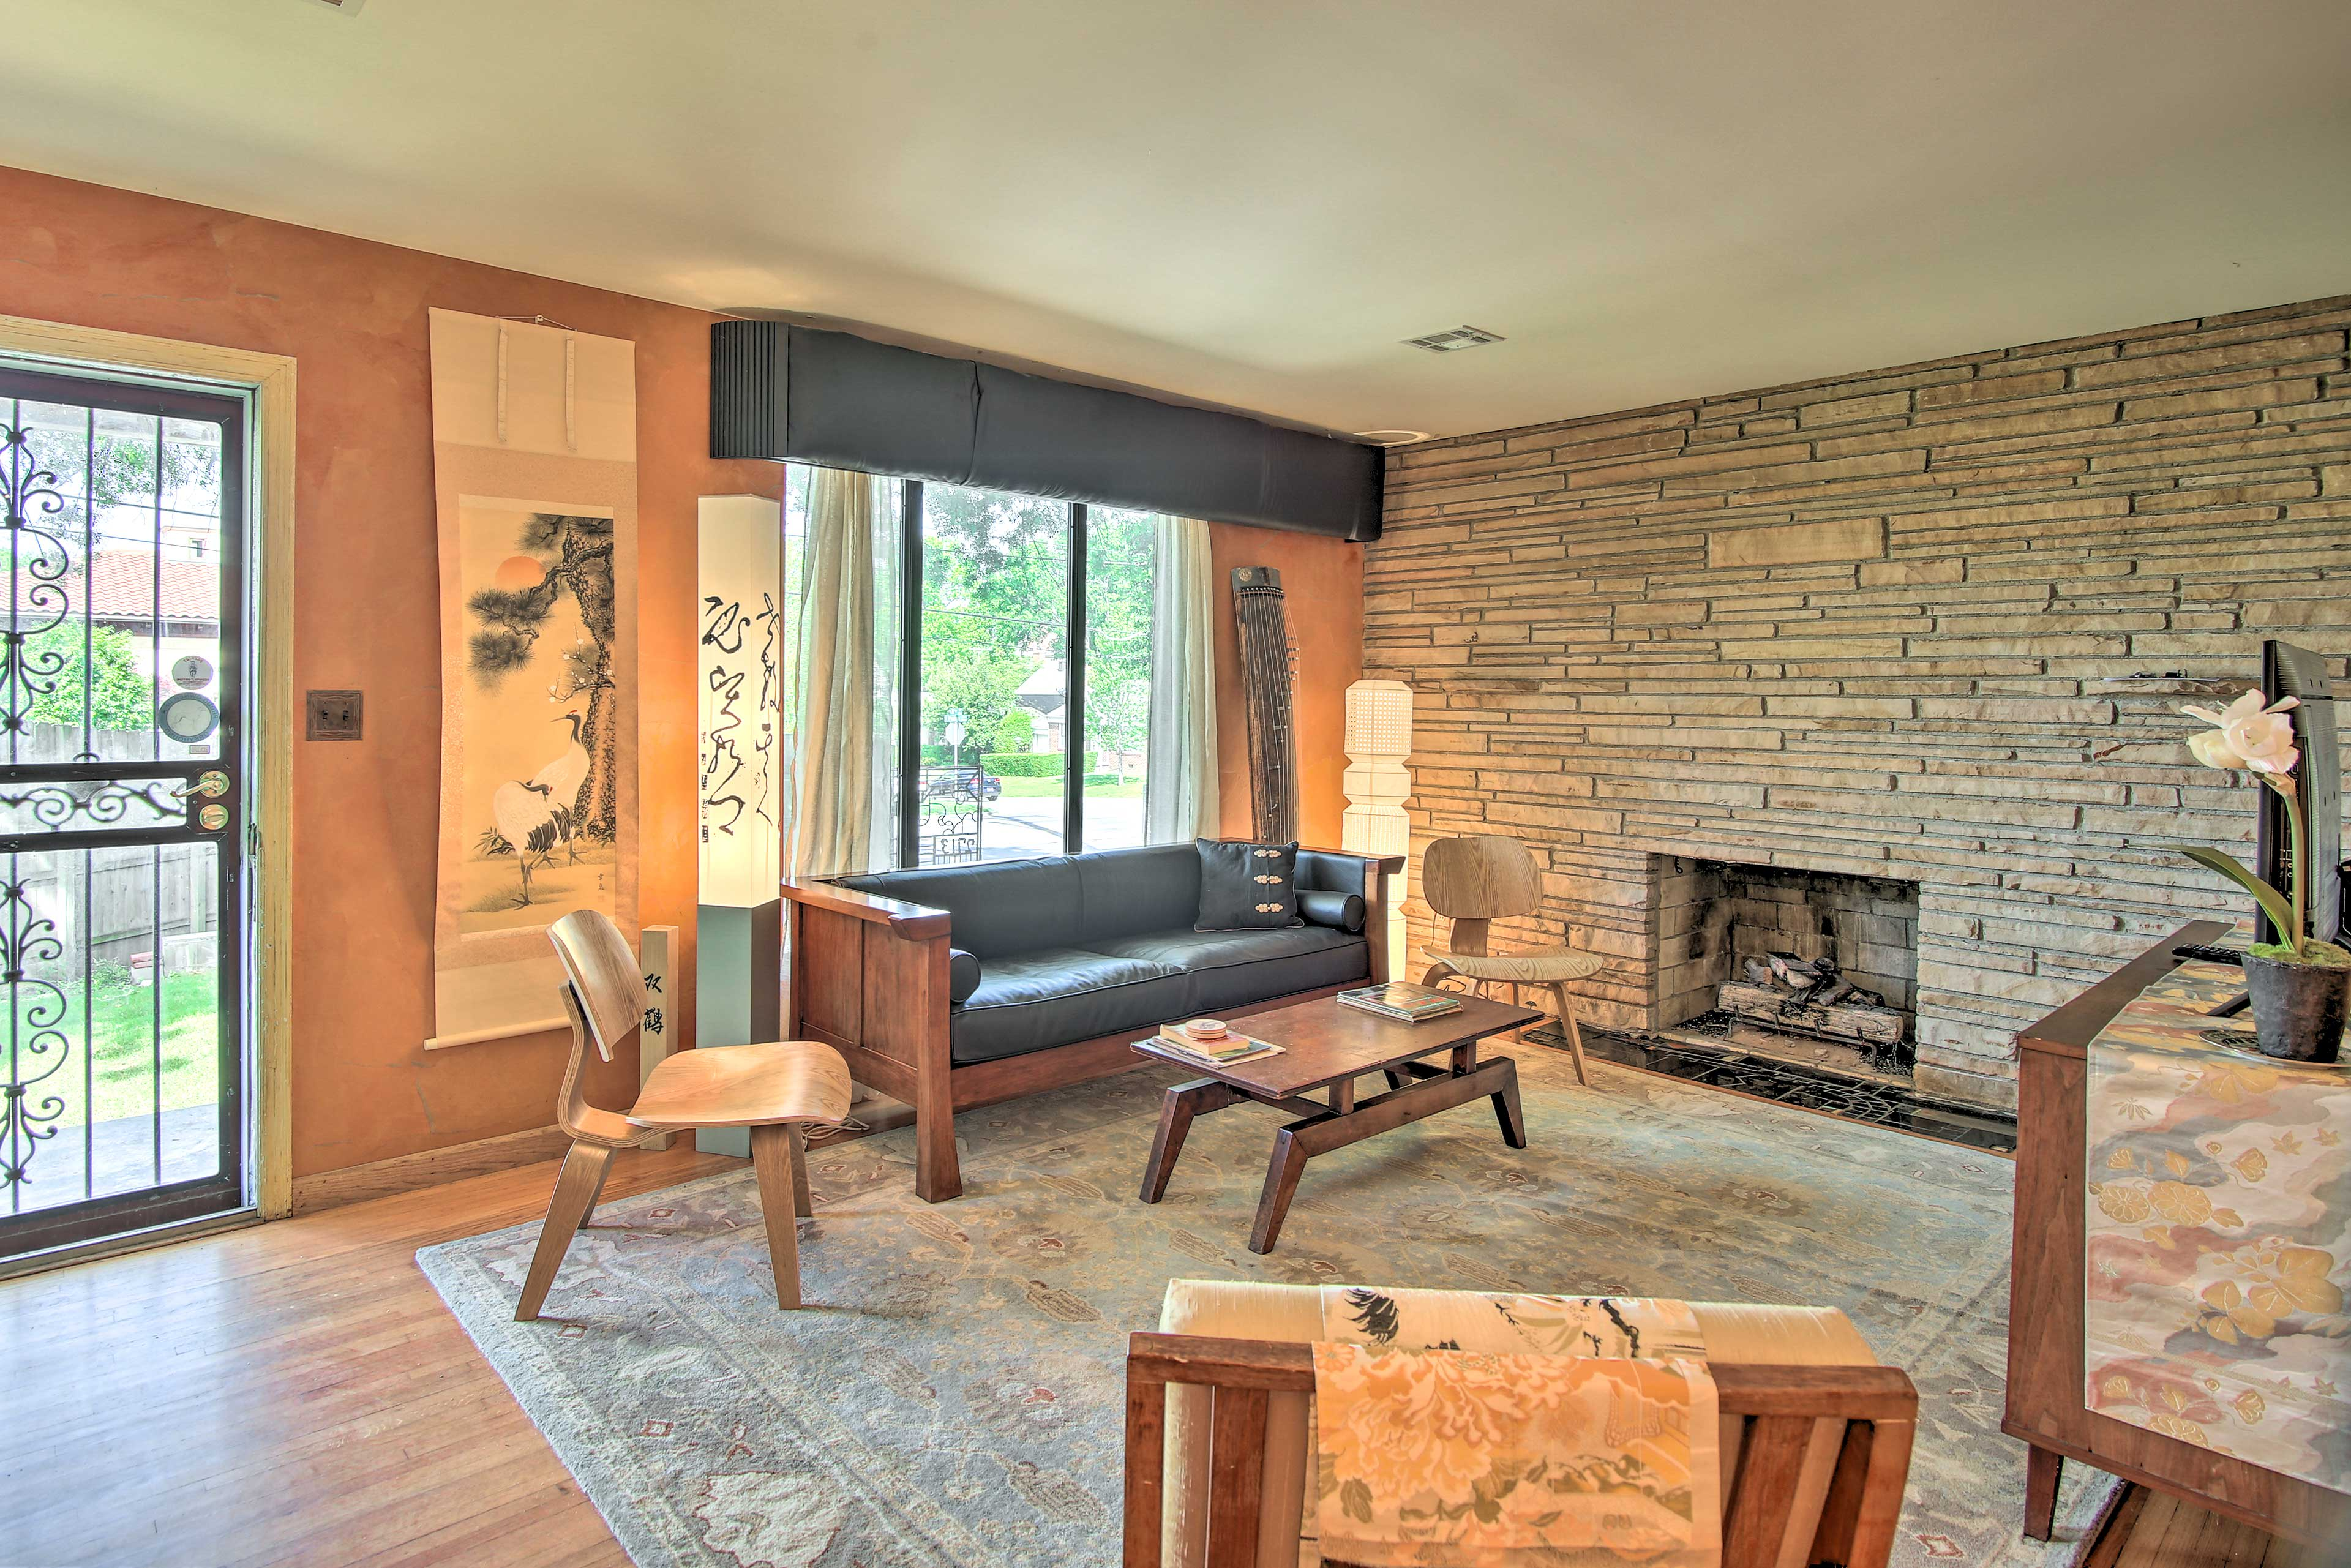 'Kimono House' is decorated with a blend of Japanese & mid-century modern decor.